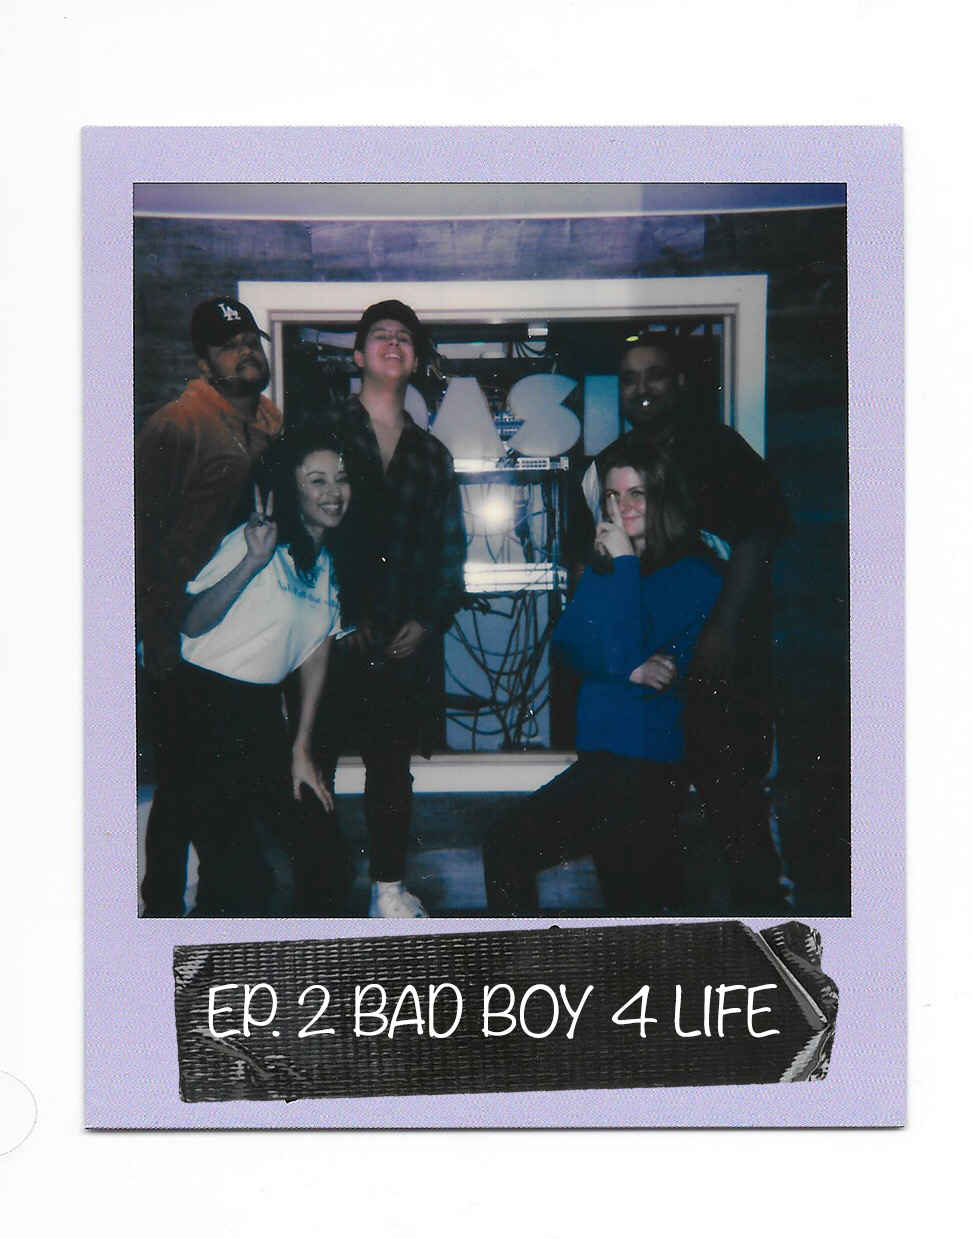 Episode 2 -Bad Boy 4 Life - In our second episode of Overly Conversated, we break down each of our Top 5 Bad Boy artists from The Notorious B.I.G., Faith Evans, Ma$e, The Lox, French Montana, reminisce on the iconic videos and more!